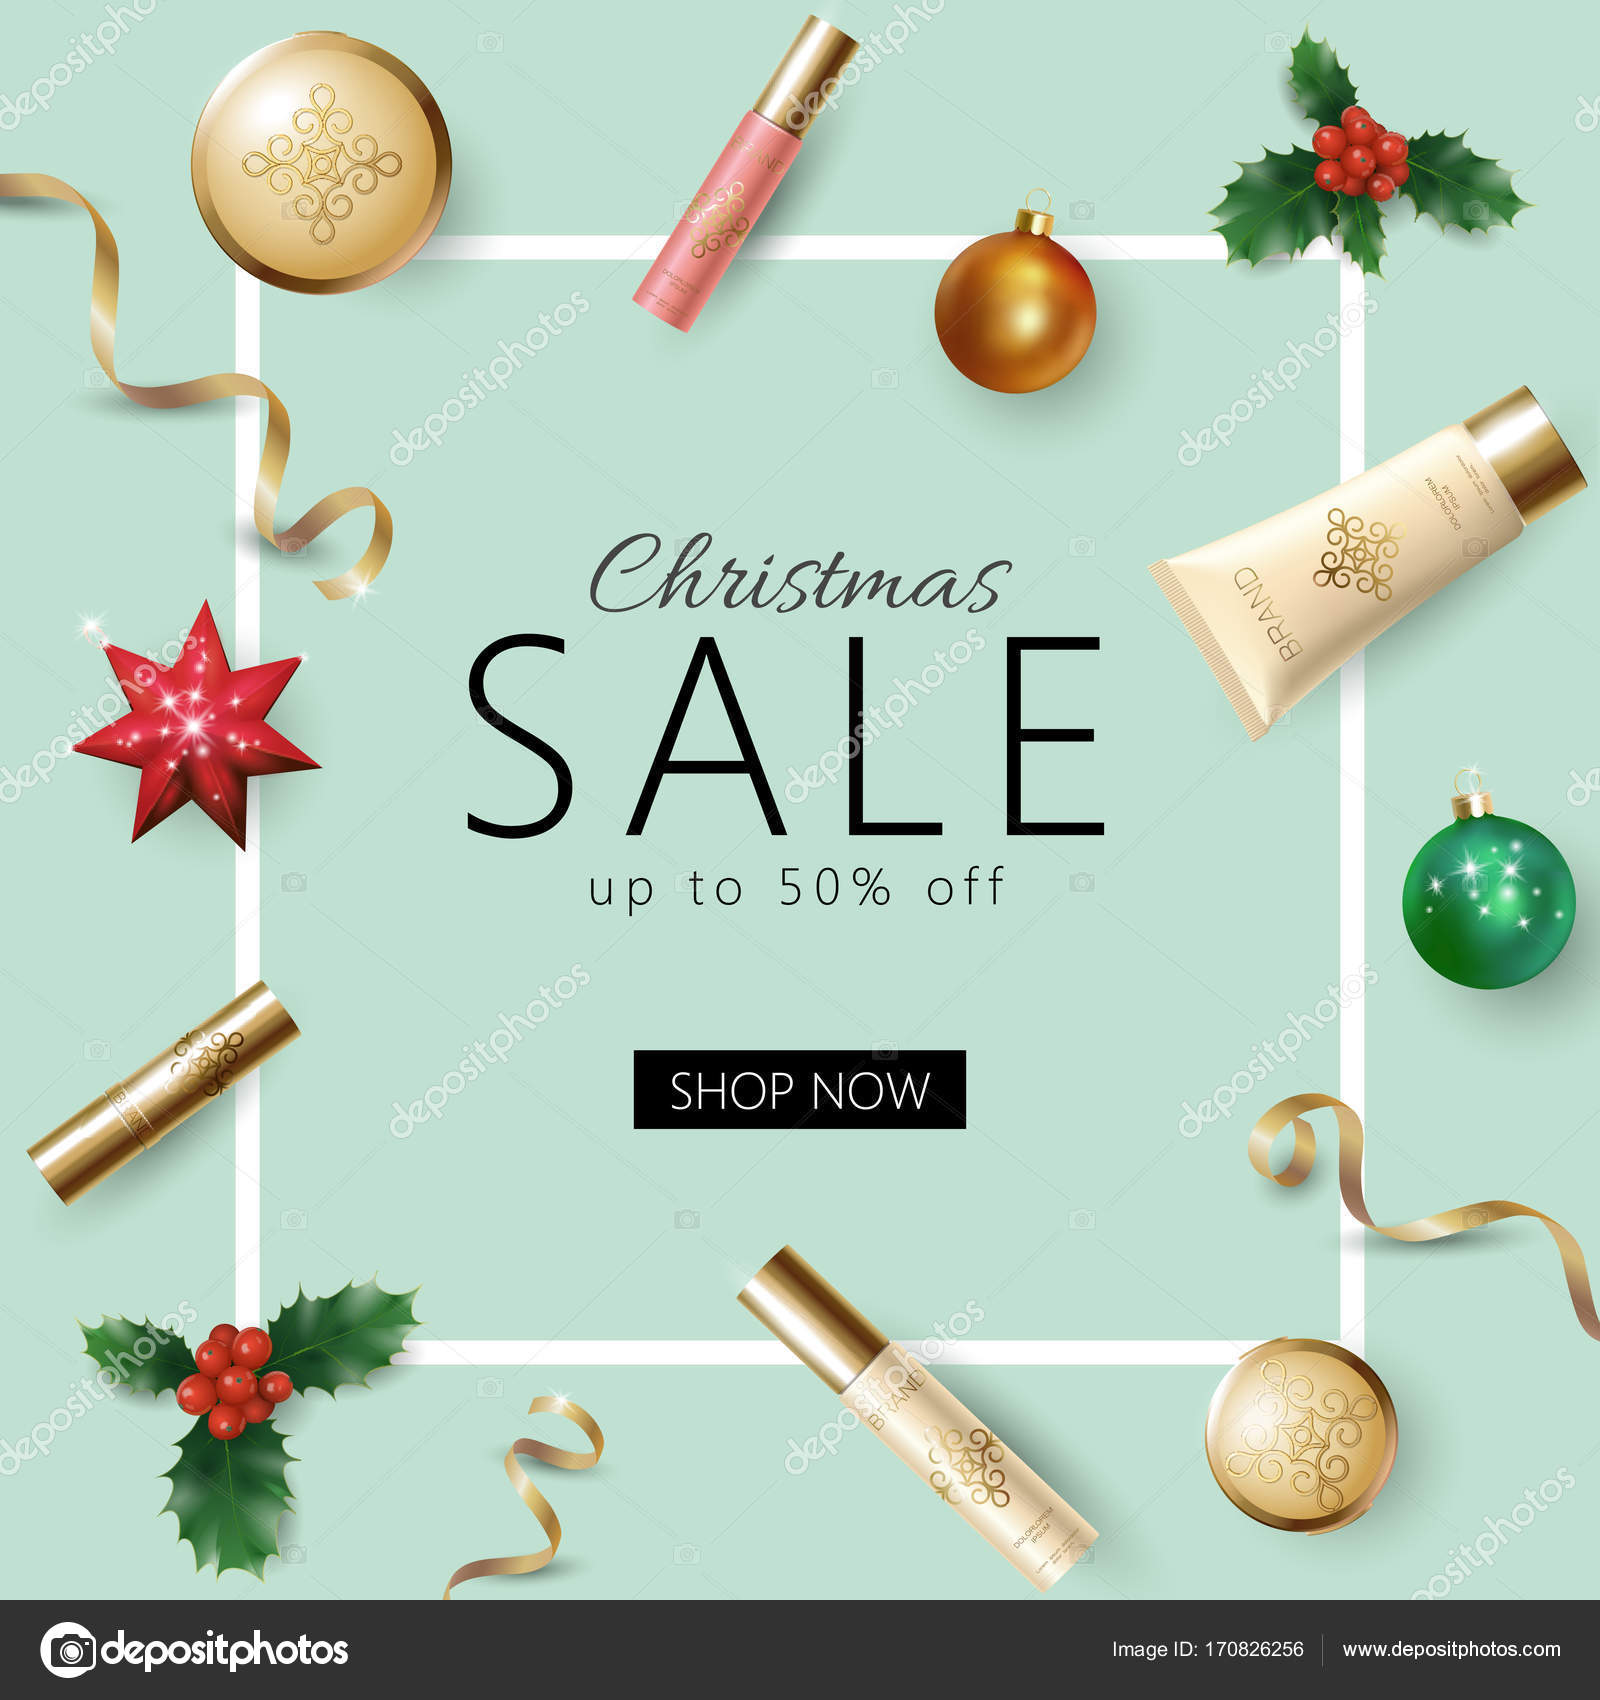 Realistic 3d Christmas Holiday Sale Web Banner Template Cosmetic Makeup Product Ad Decoration Holly Branches New Year Special Offer Square Frame Promotional Poster Vector Illustration Stock Vector C Goodluckwithus 170826256